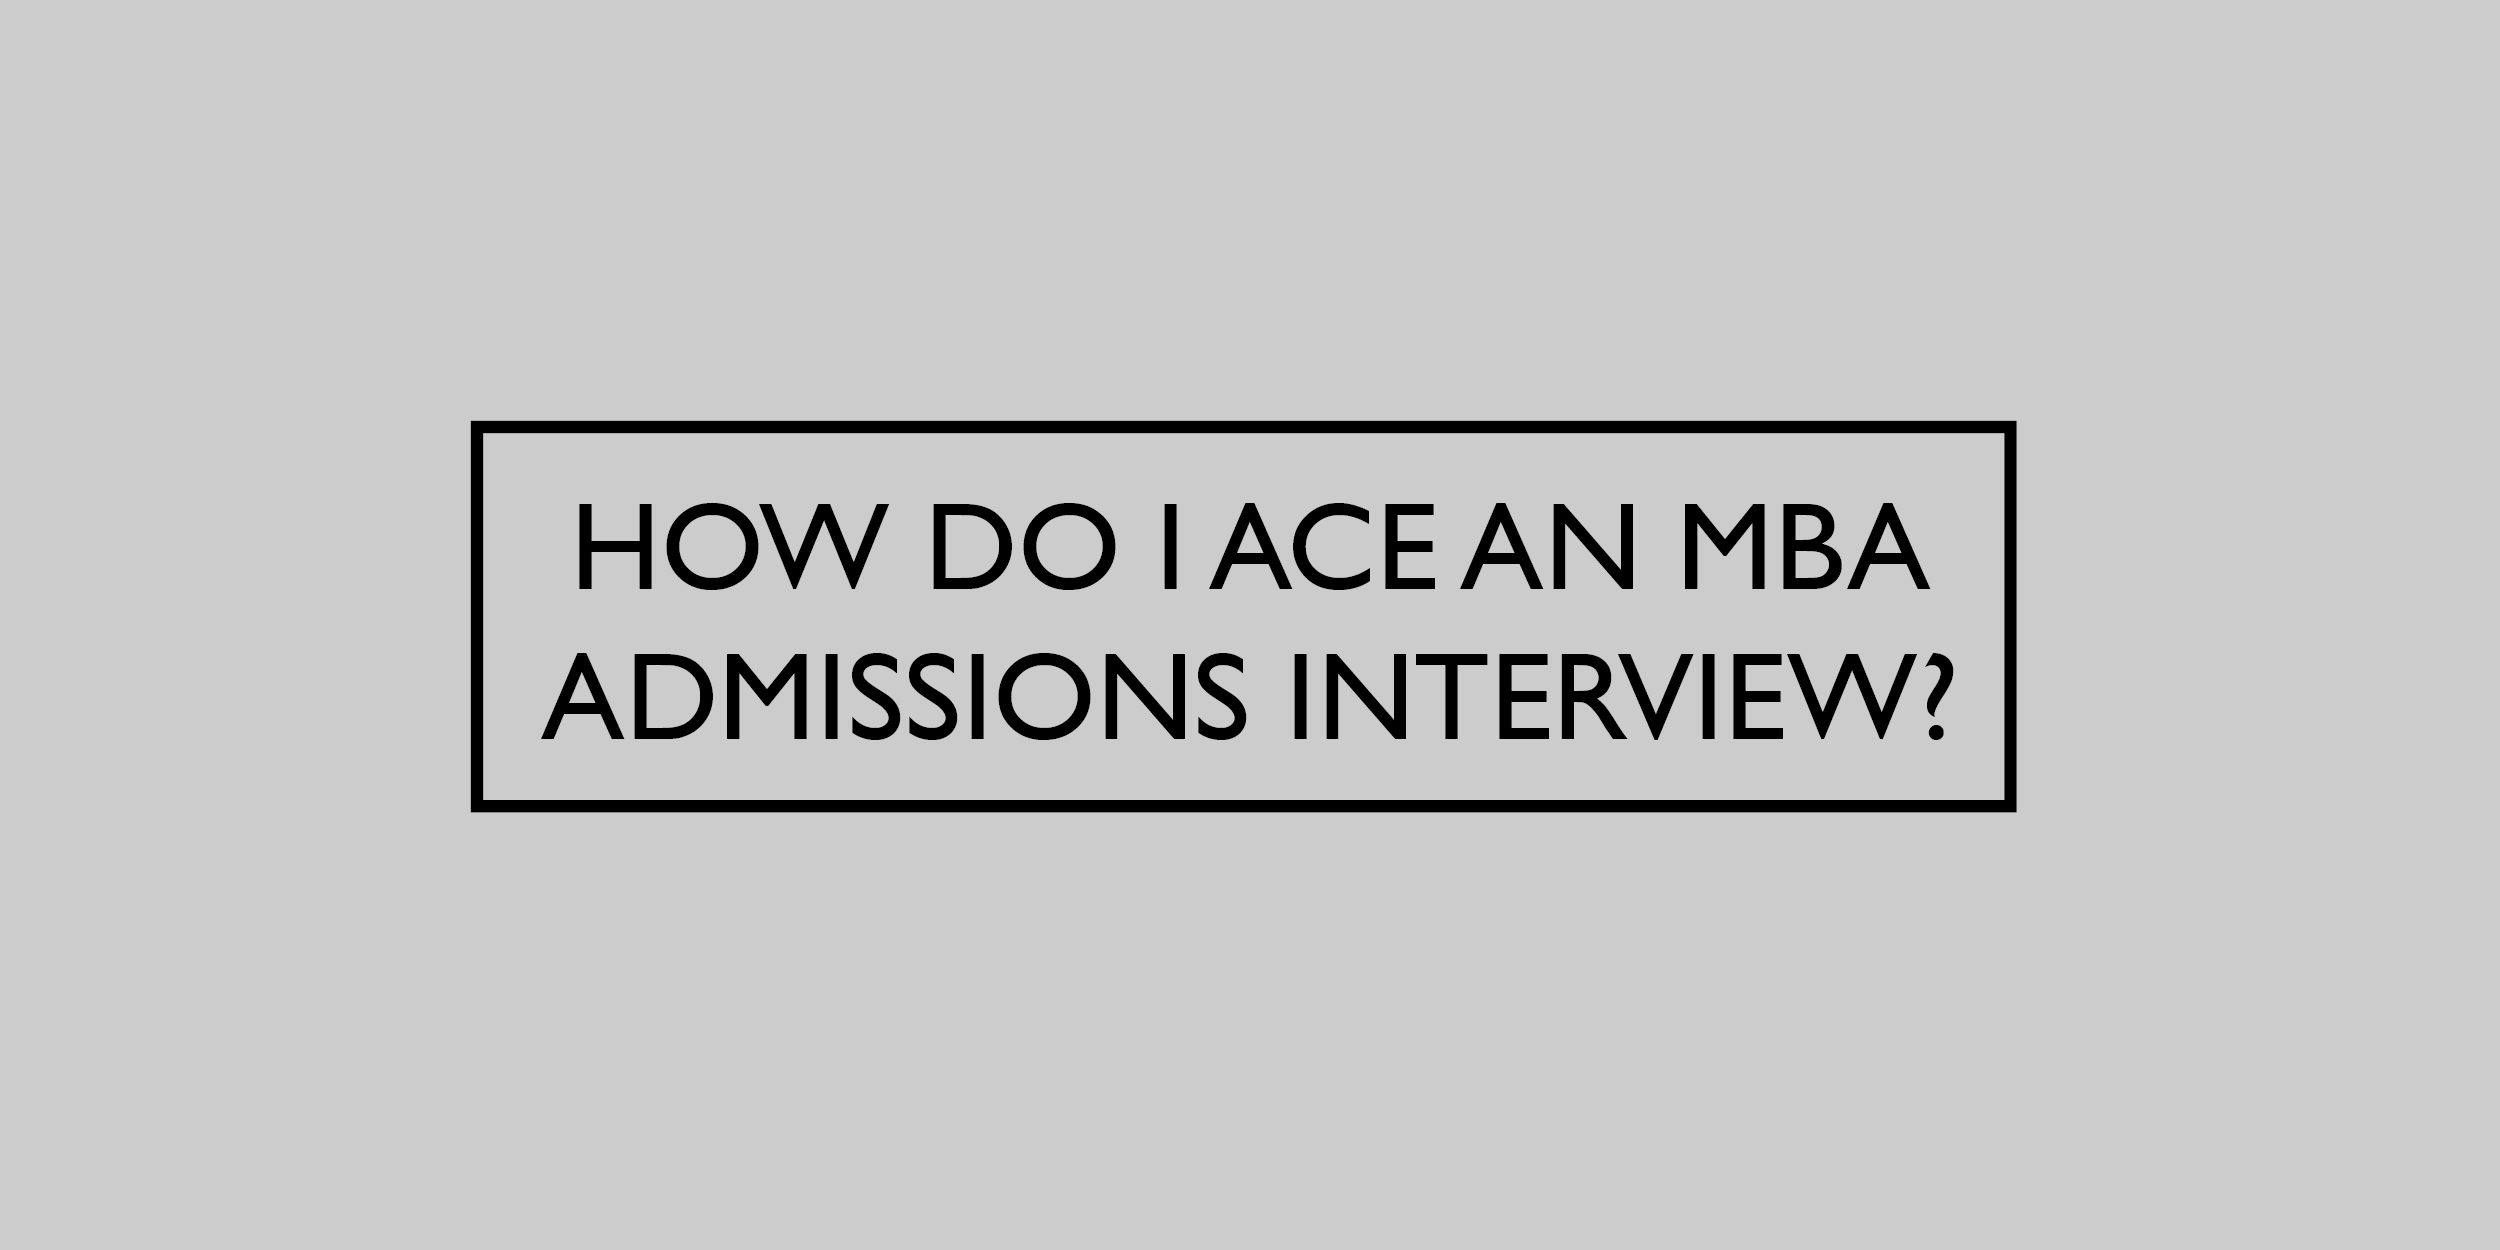 How do I Ace an MBA Admissions Interview?